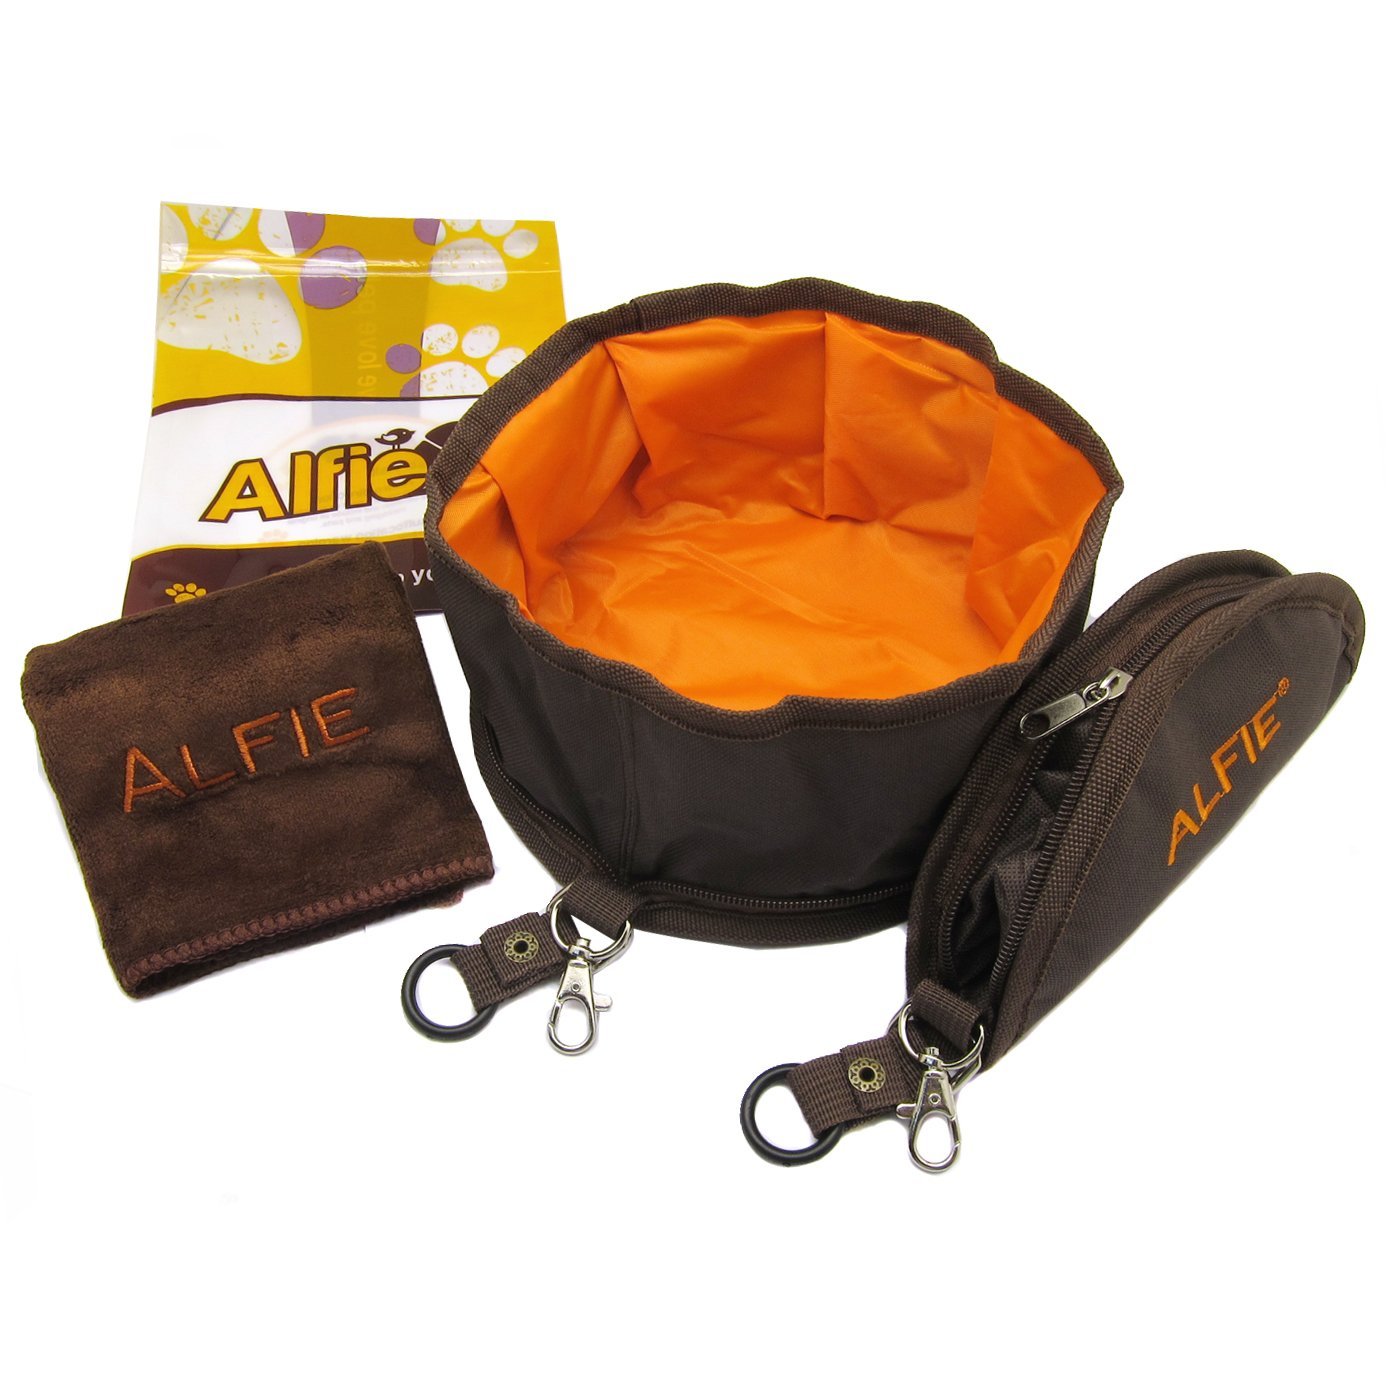 Alfie Pet by Petoga Couture - Set of 2 Fabric Expandable/Collapsible Travel Bowl (for food and water) with Microfiber Fast-Dry Washcloth - Color: Brown